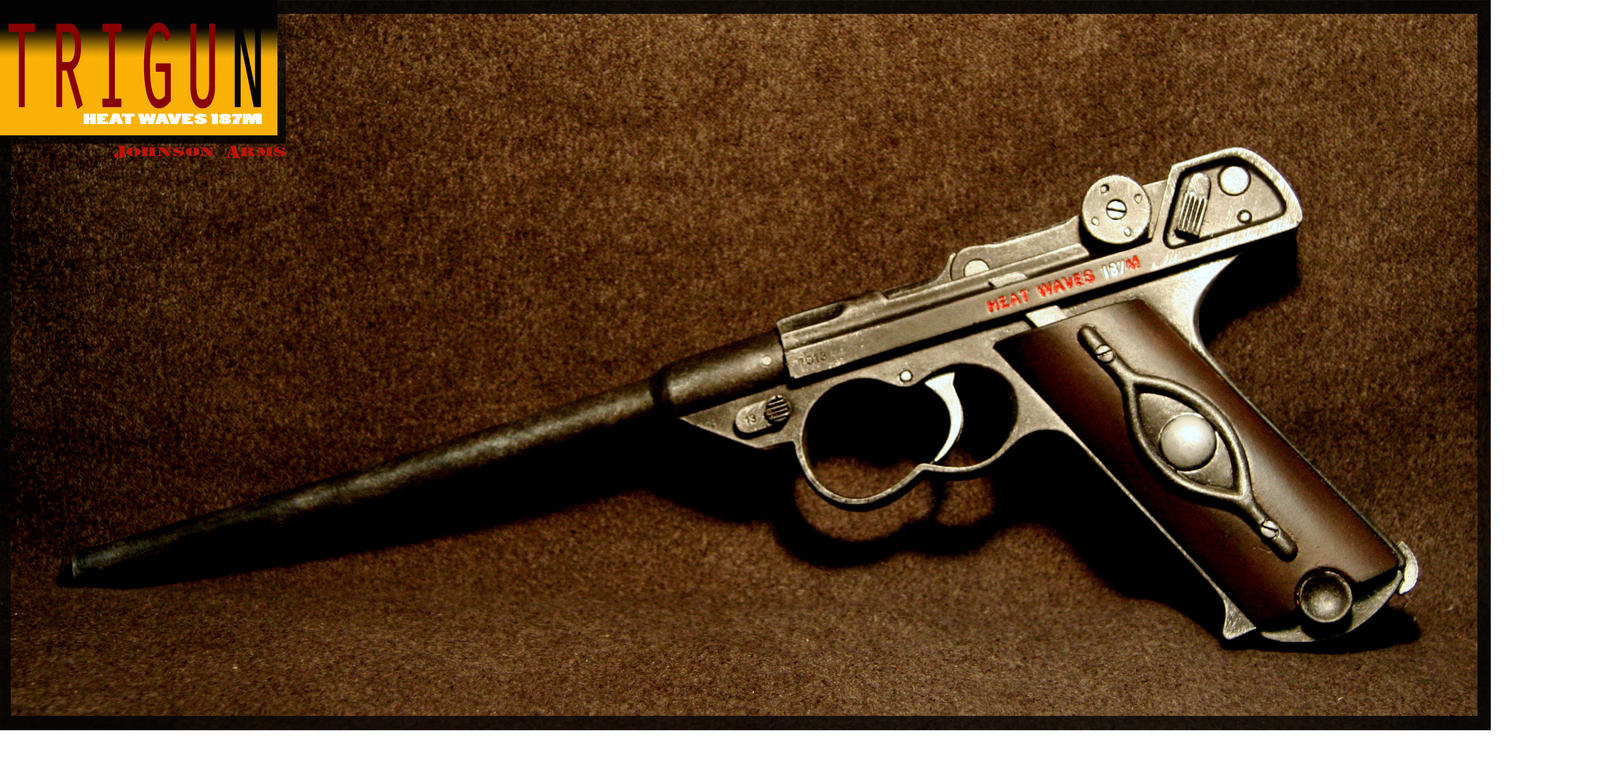 Dieselpunk Weapons Dieselpunk weaponryDieselpunk Weapons